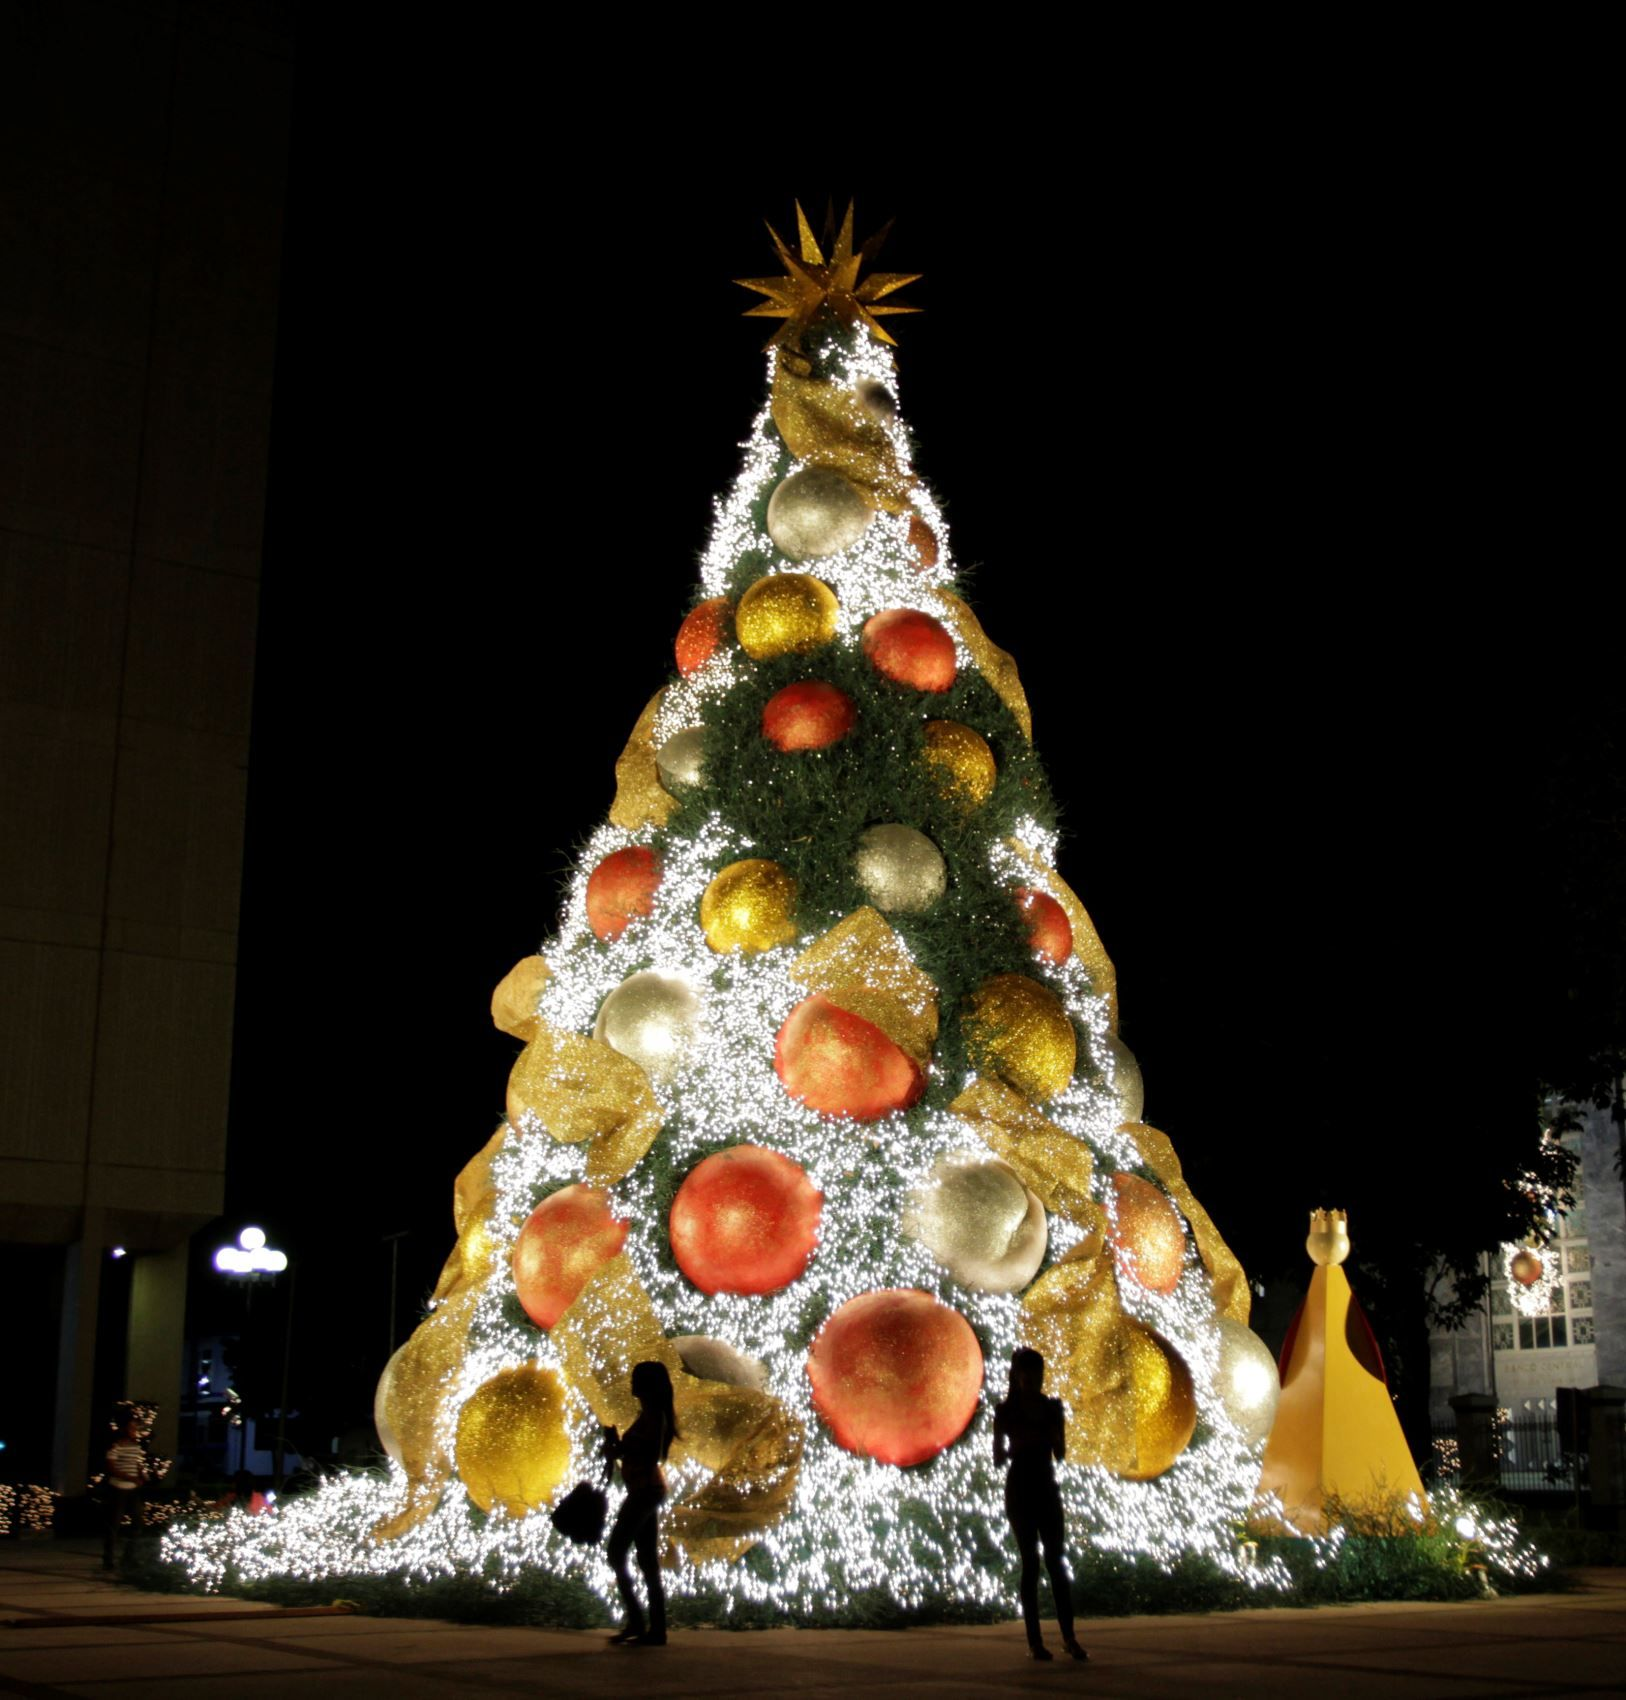 The worlds best christmas trees santo domingo dominican the worlds best christmas trees santo domingo dominican republic a display from 2011 sciox Image collections